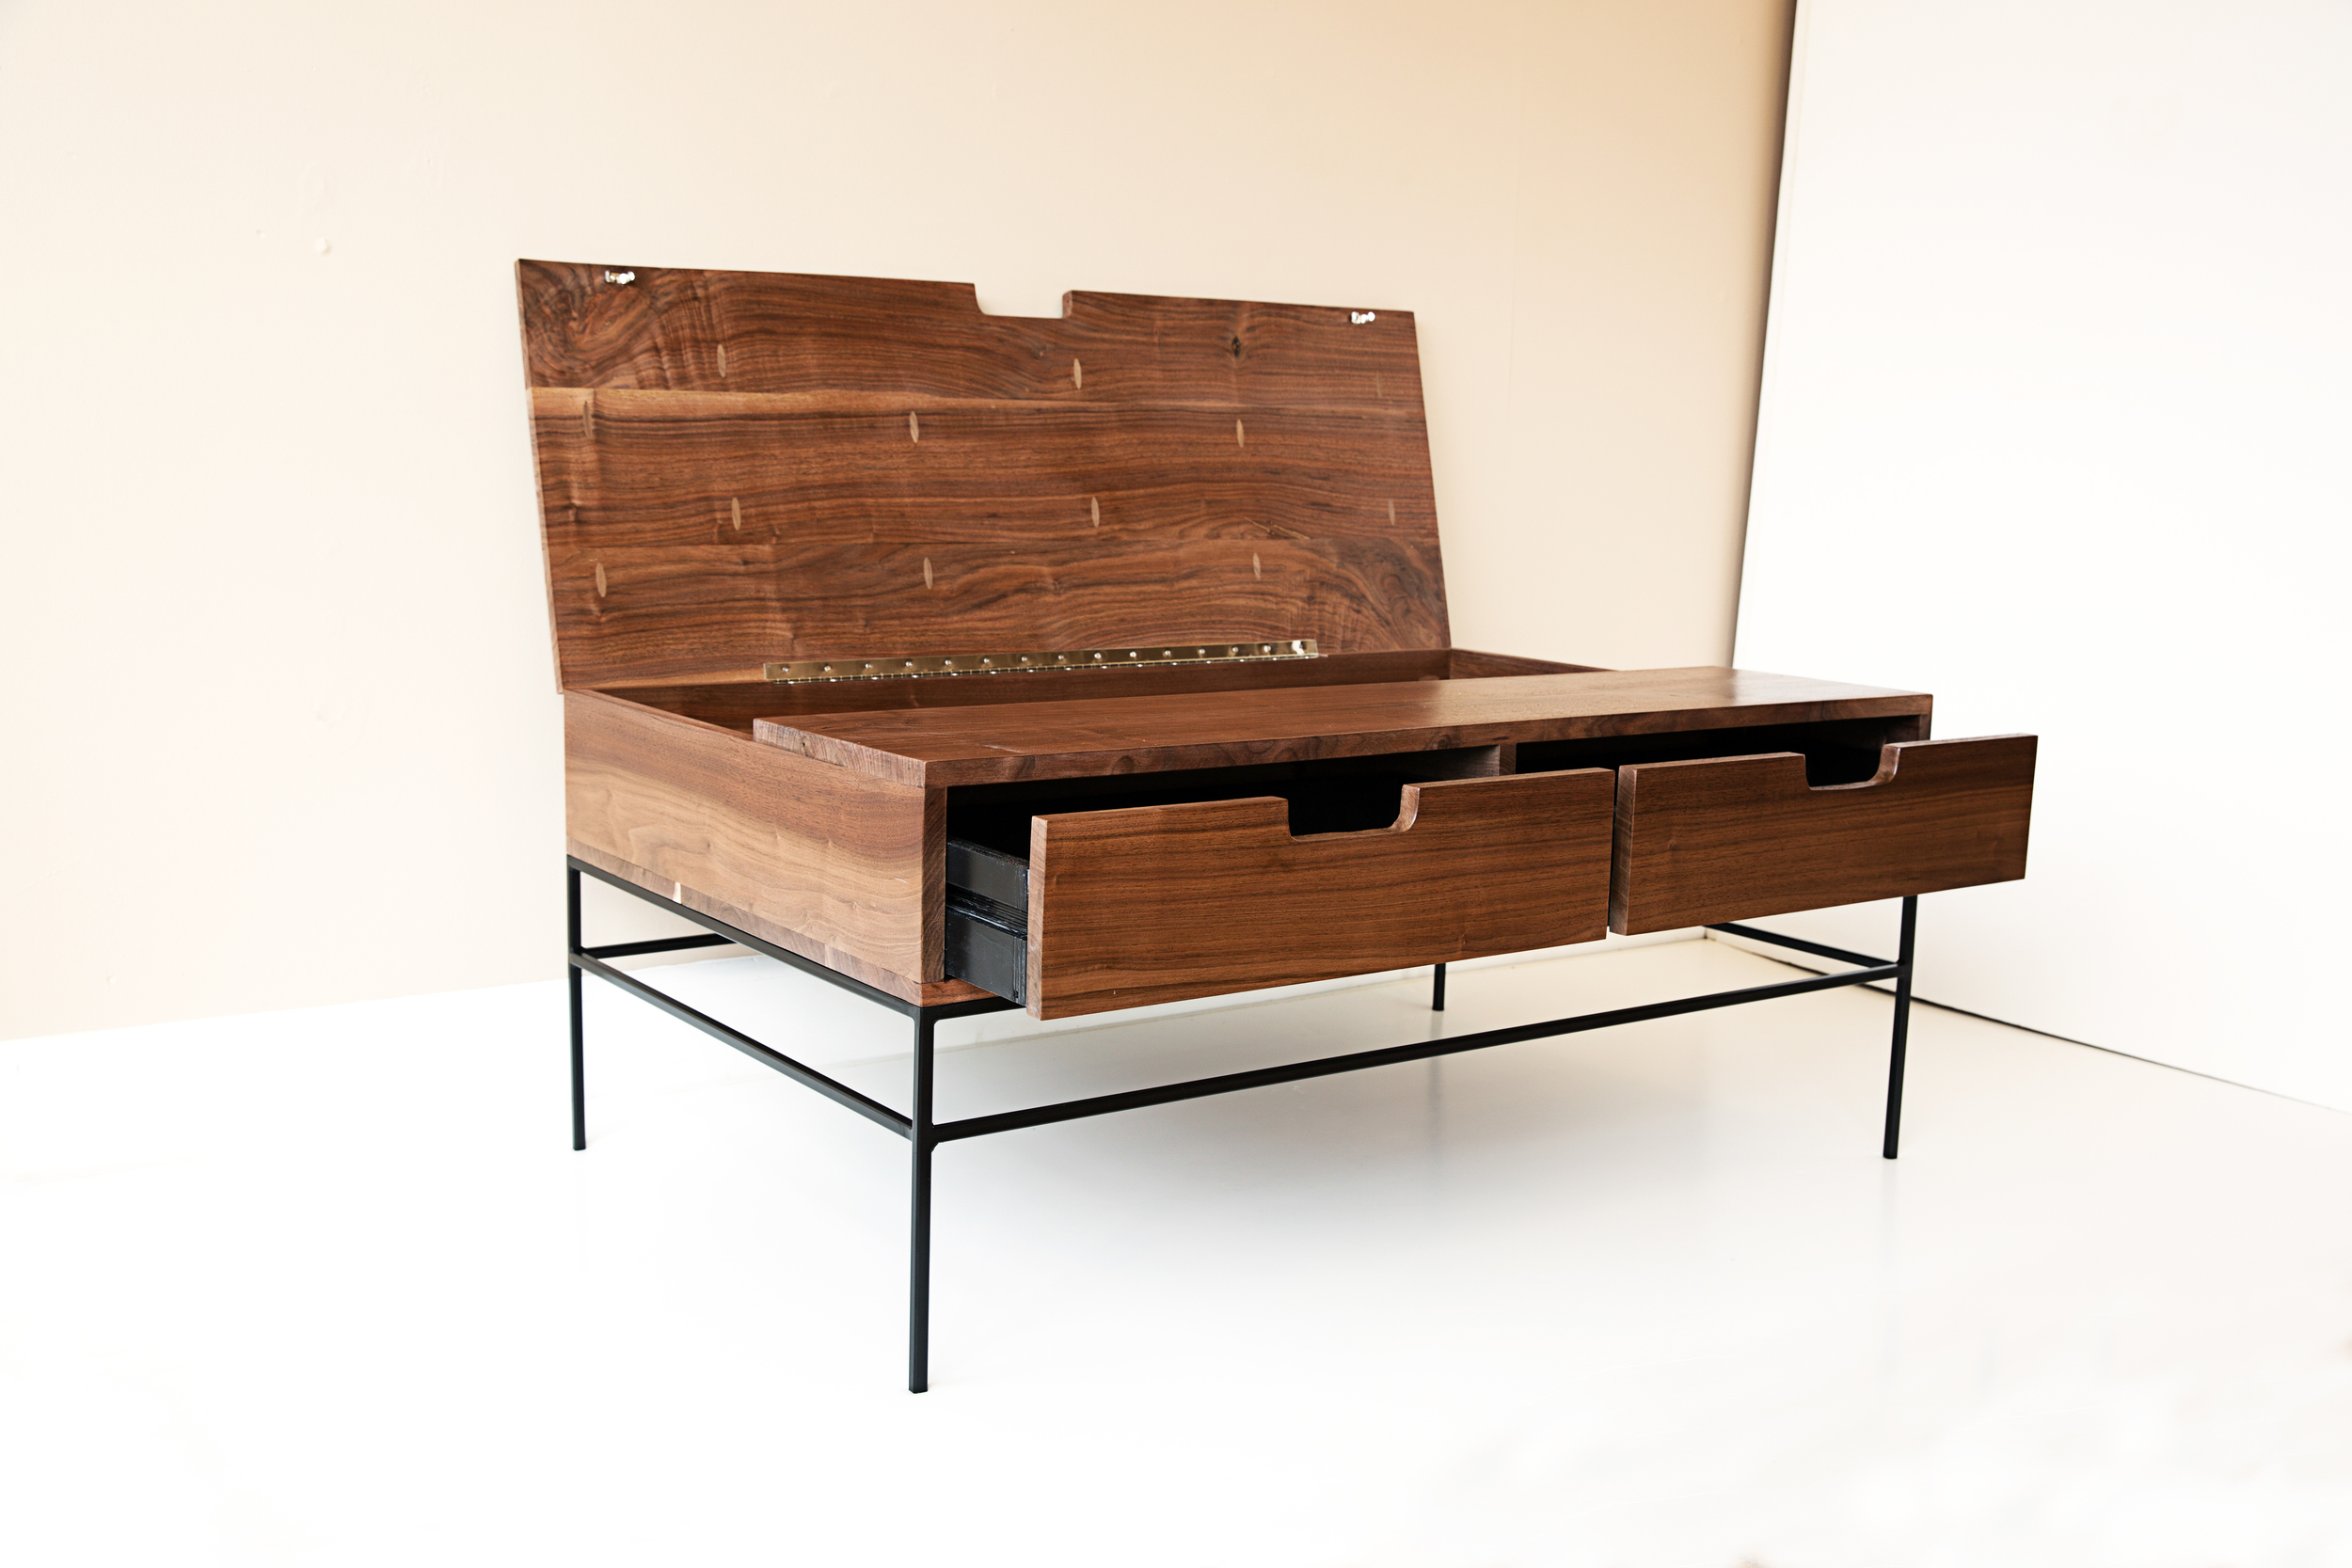 DGSHG_walnut_coffee_table-3.jpg